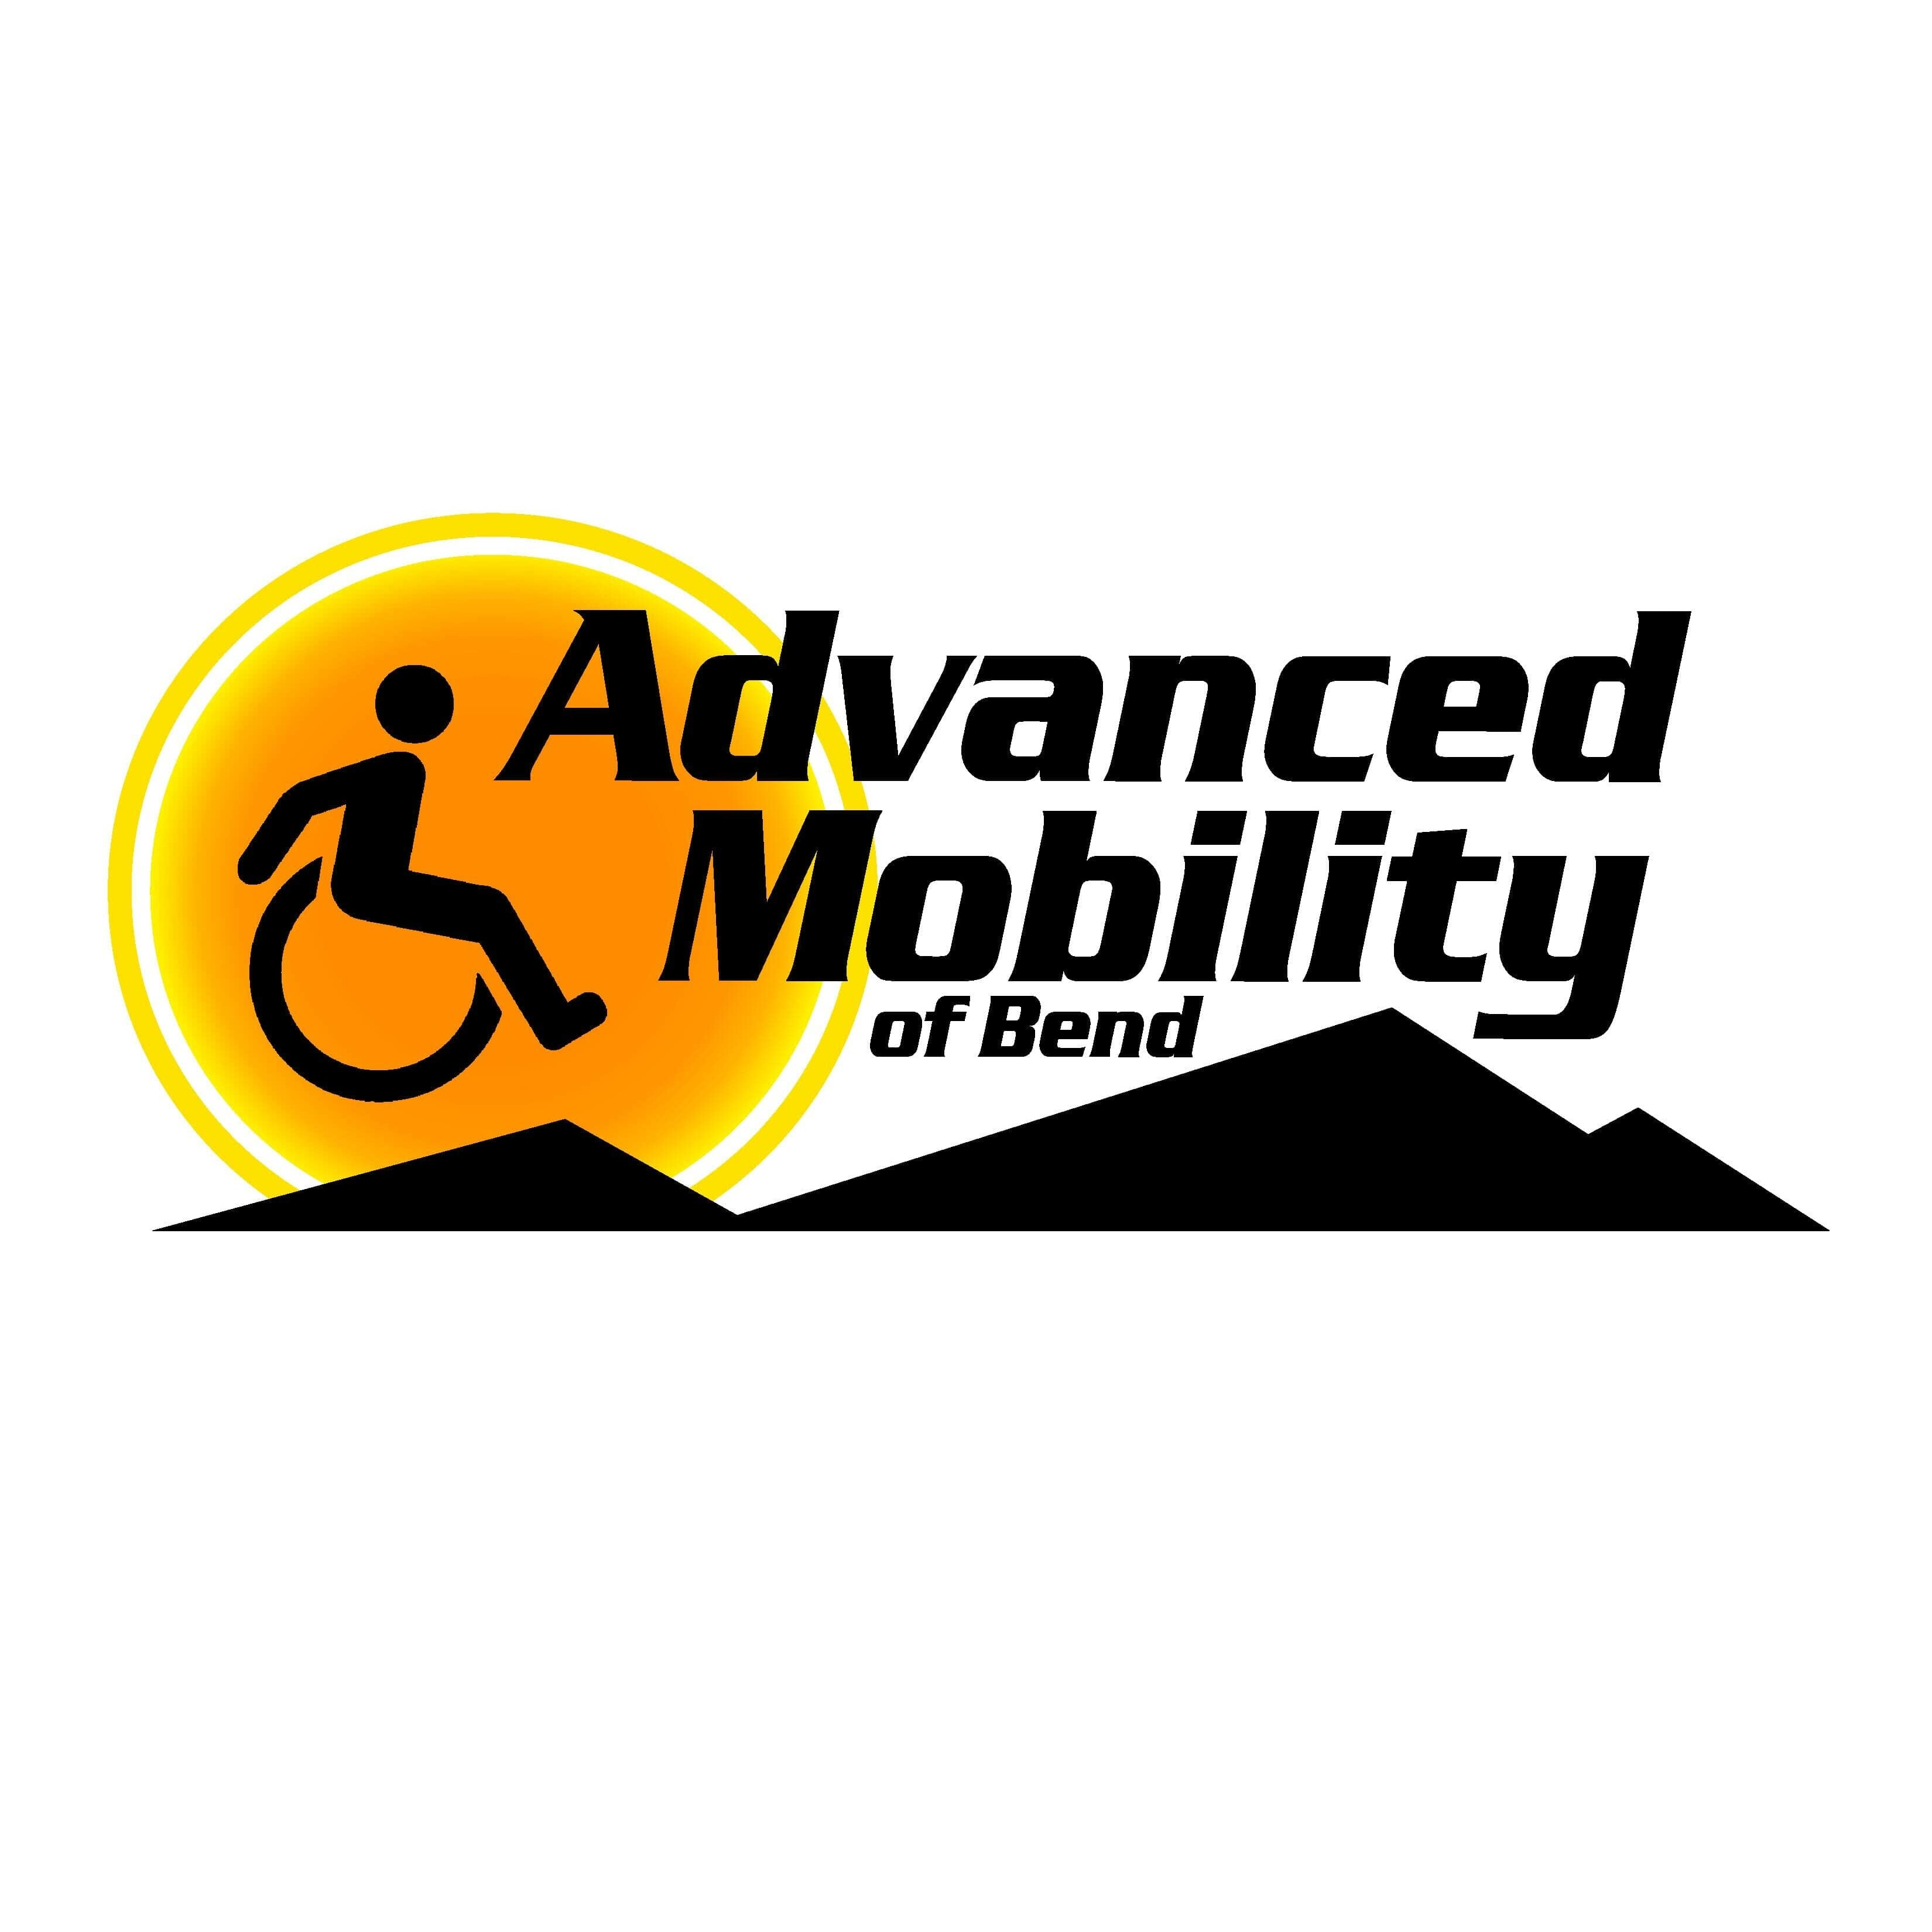 Advanced Mobility of Bend